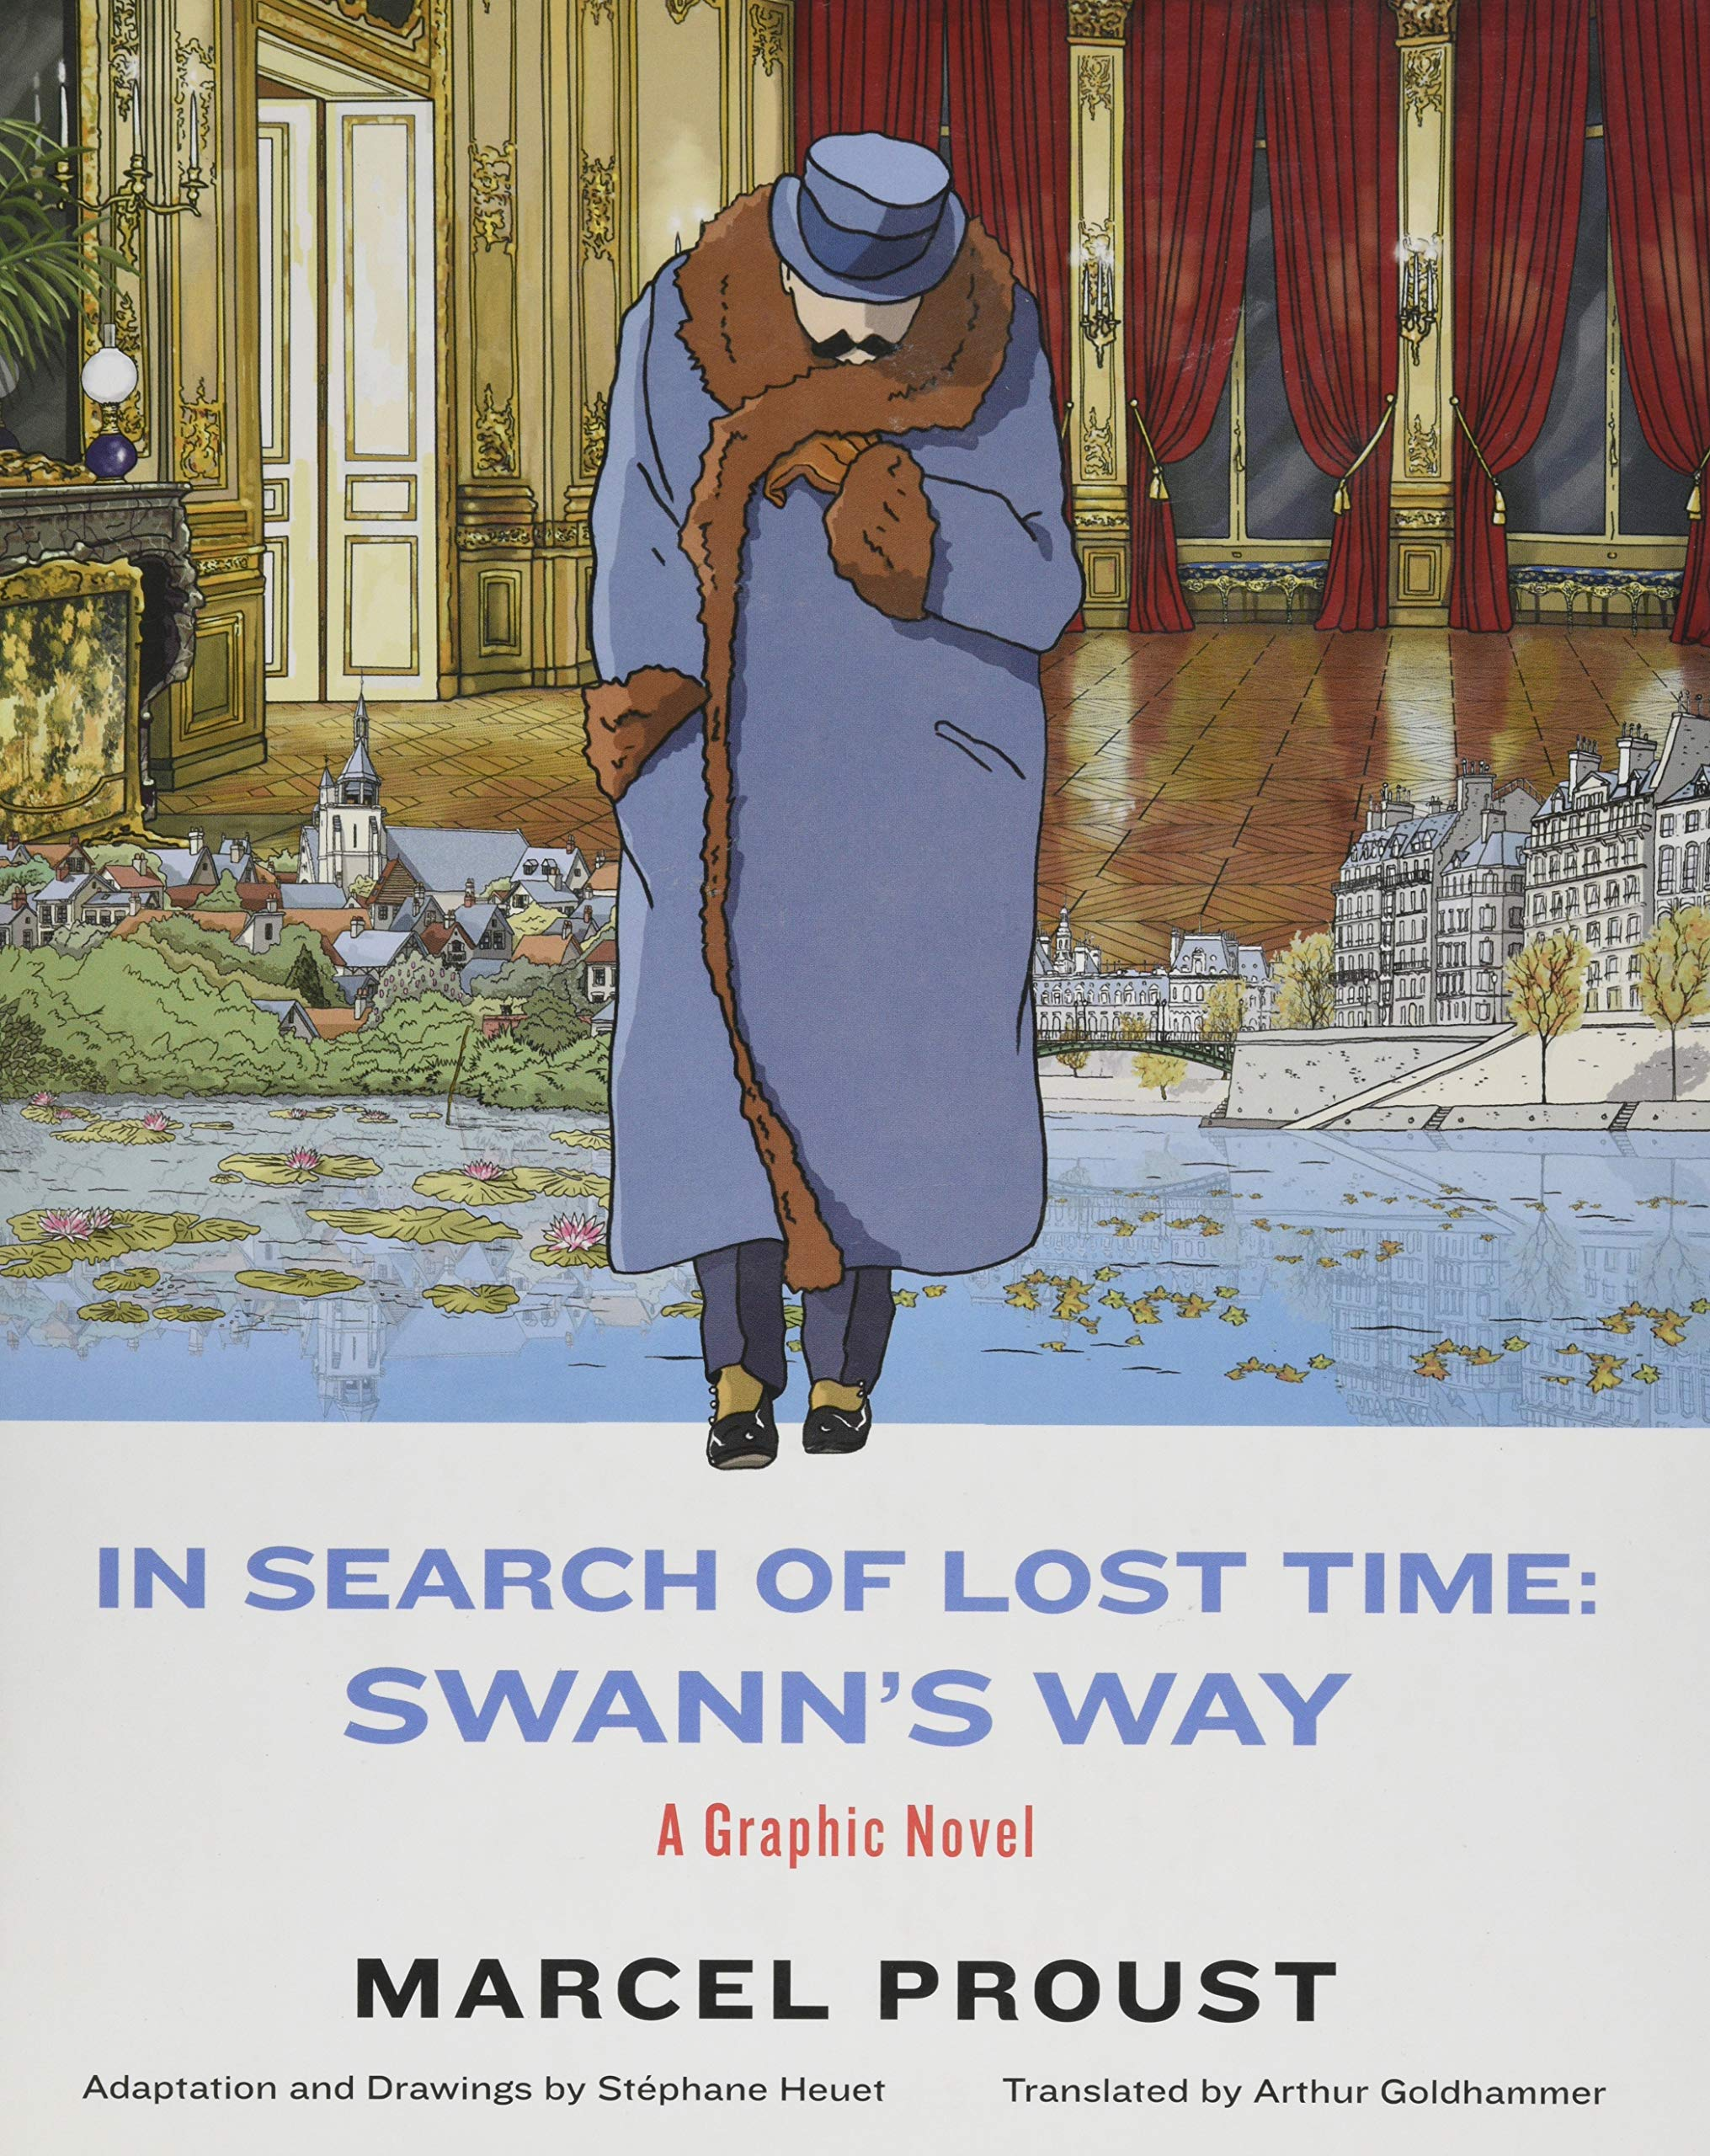 In Search of Lost Time: The Way by Swanns